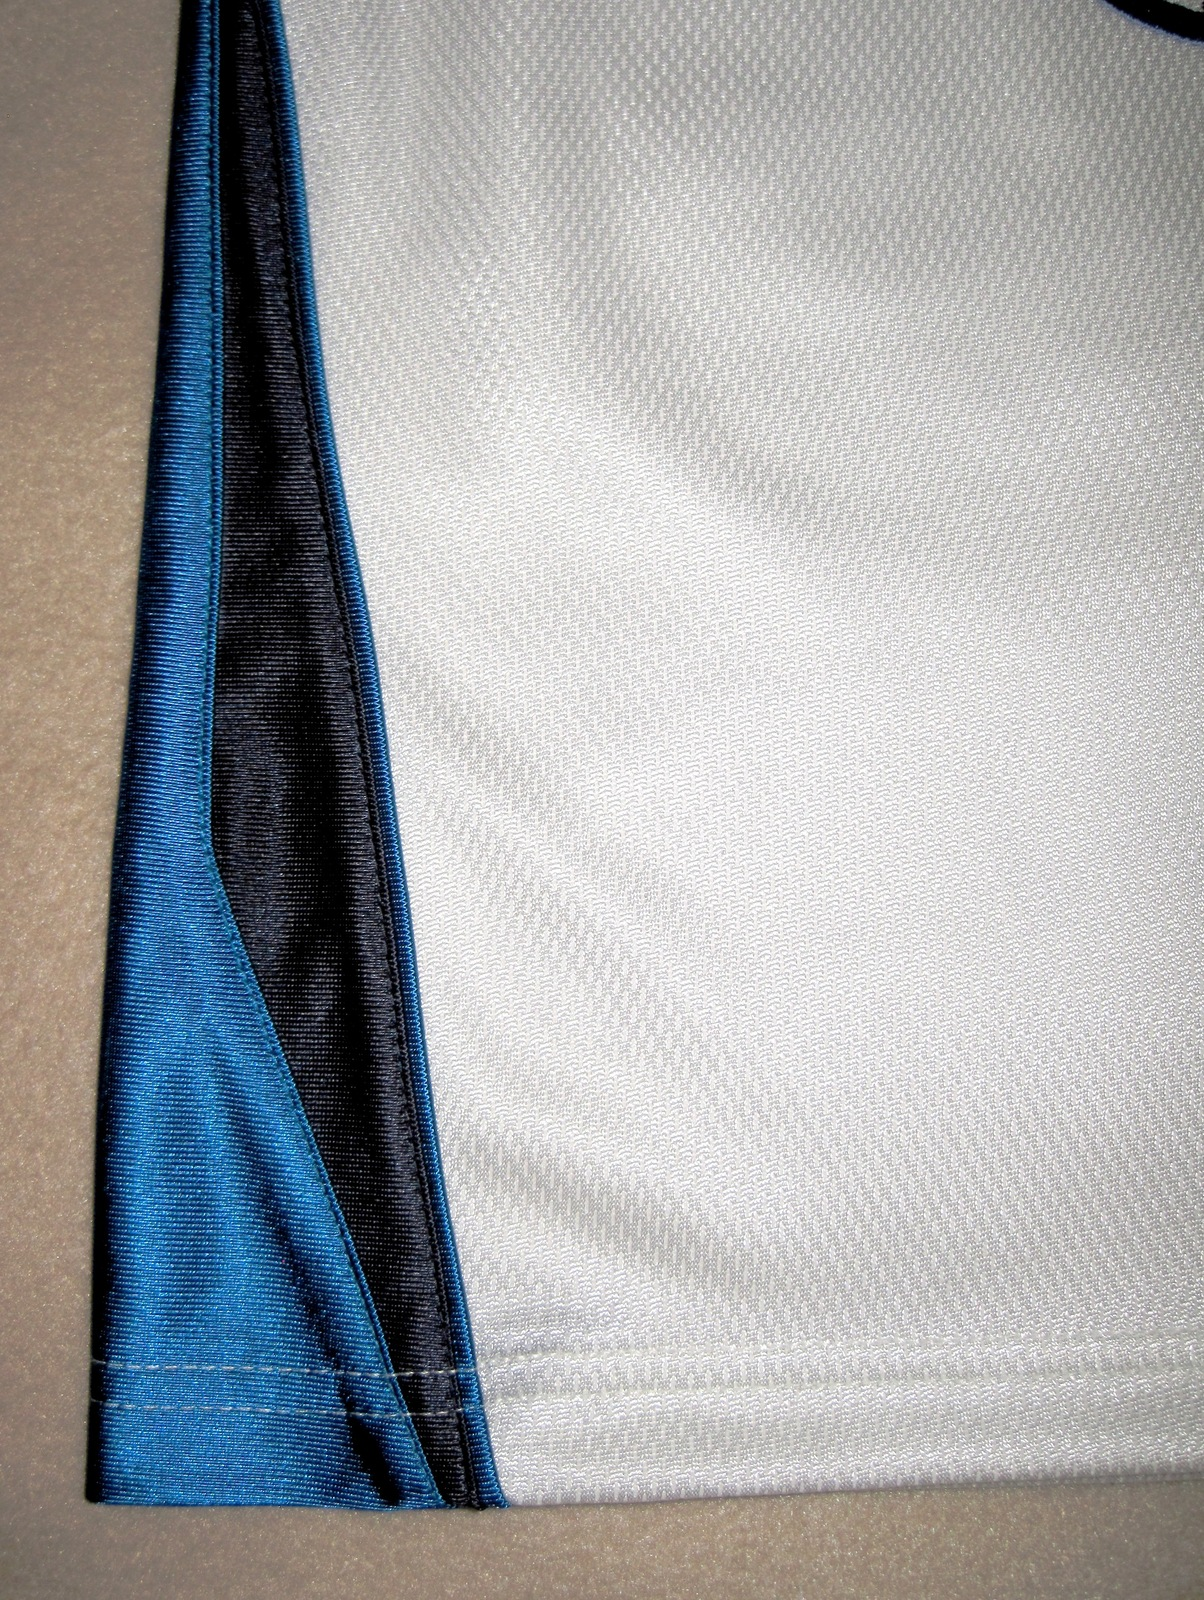 BOYS 6 - Nike Hoops - White-Electric Blue-Black BASKETBALL SPORTS JERSEY image 3